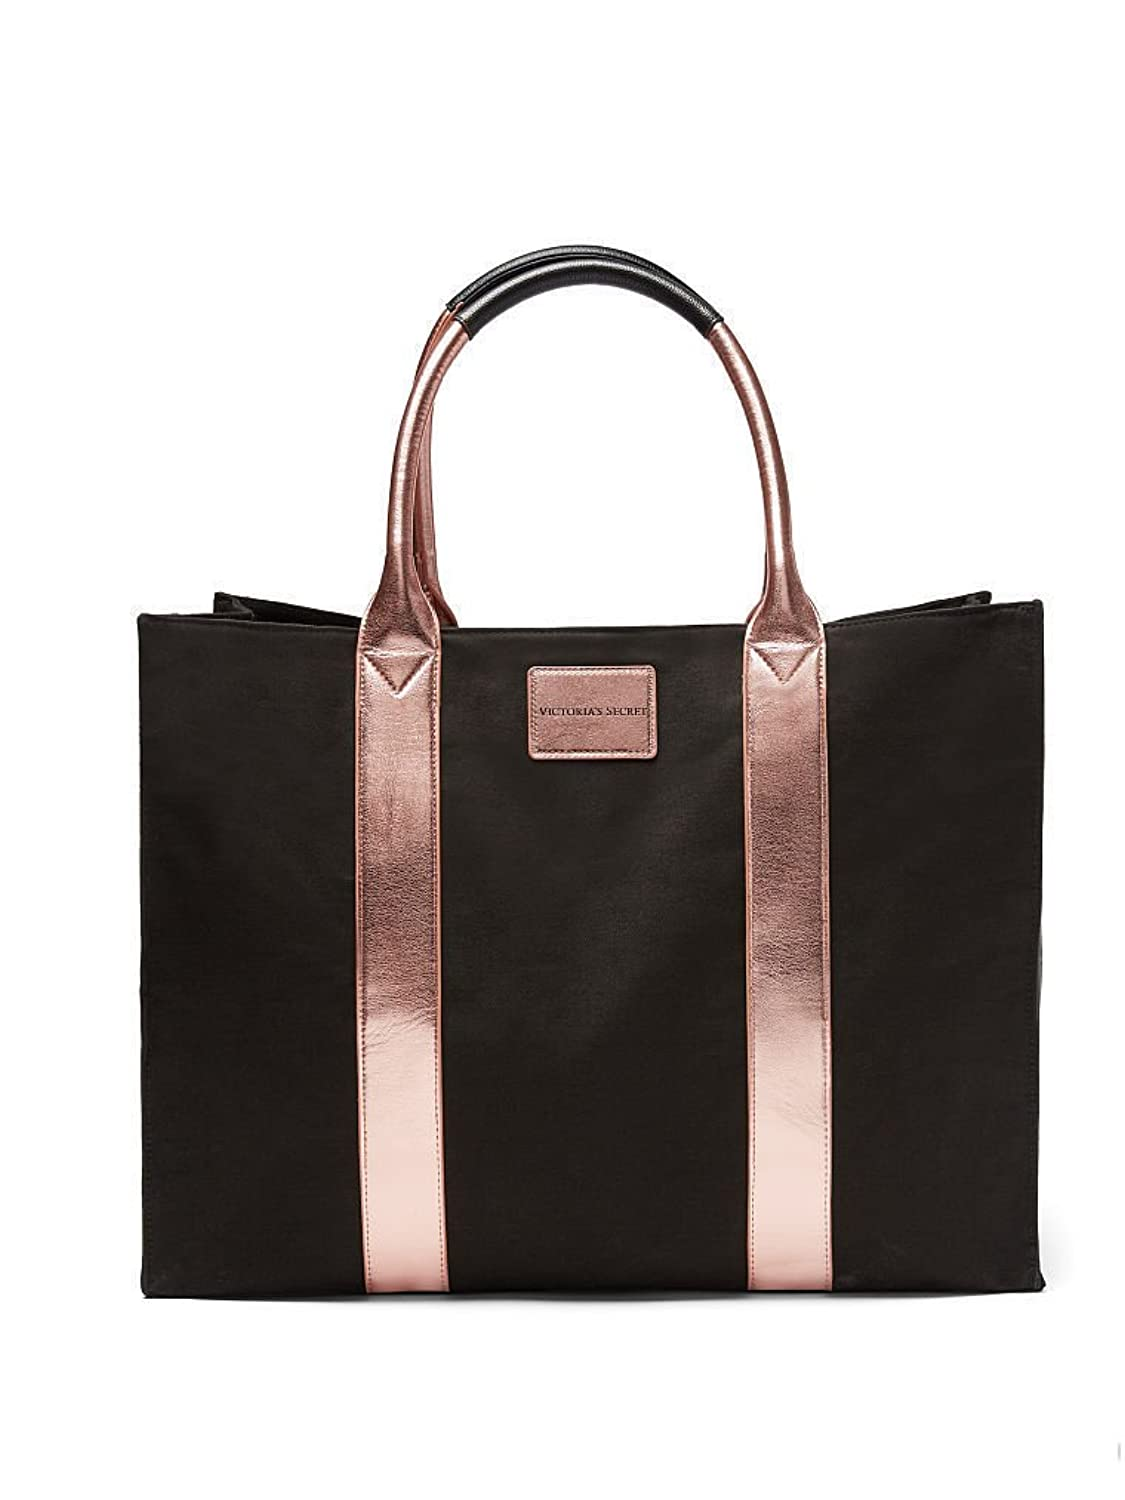 5c22322b9408cd NEW VICTORIA'S SECRET BLACK & ROSE GOLD TOTE STANDING TRAVEL BAG OVERSIZED  HUGE BAG